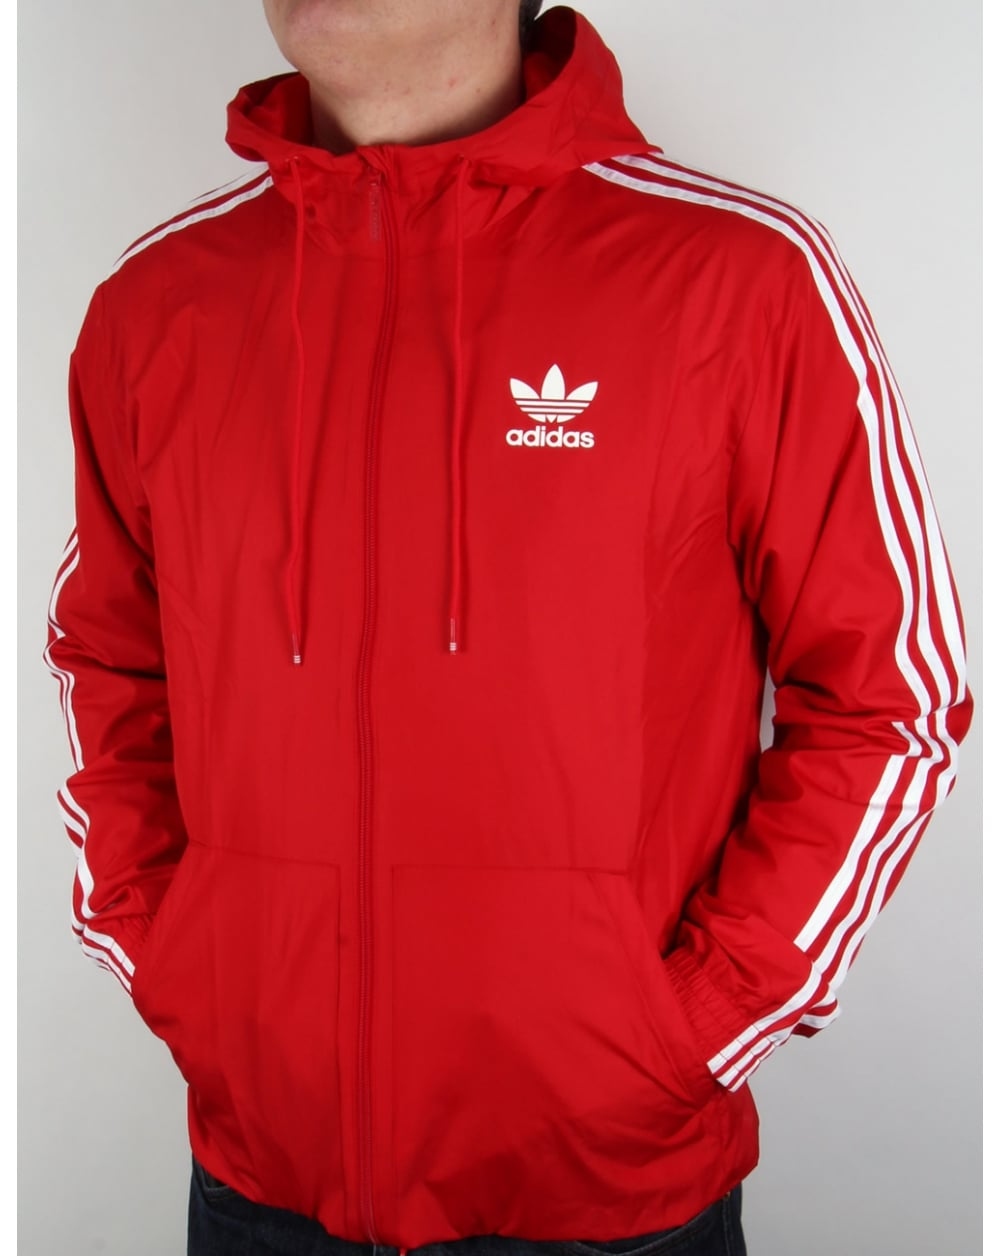 Adidas Originals Itasca Windbreaker Red Jacket Windrunner Coat